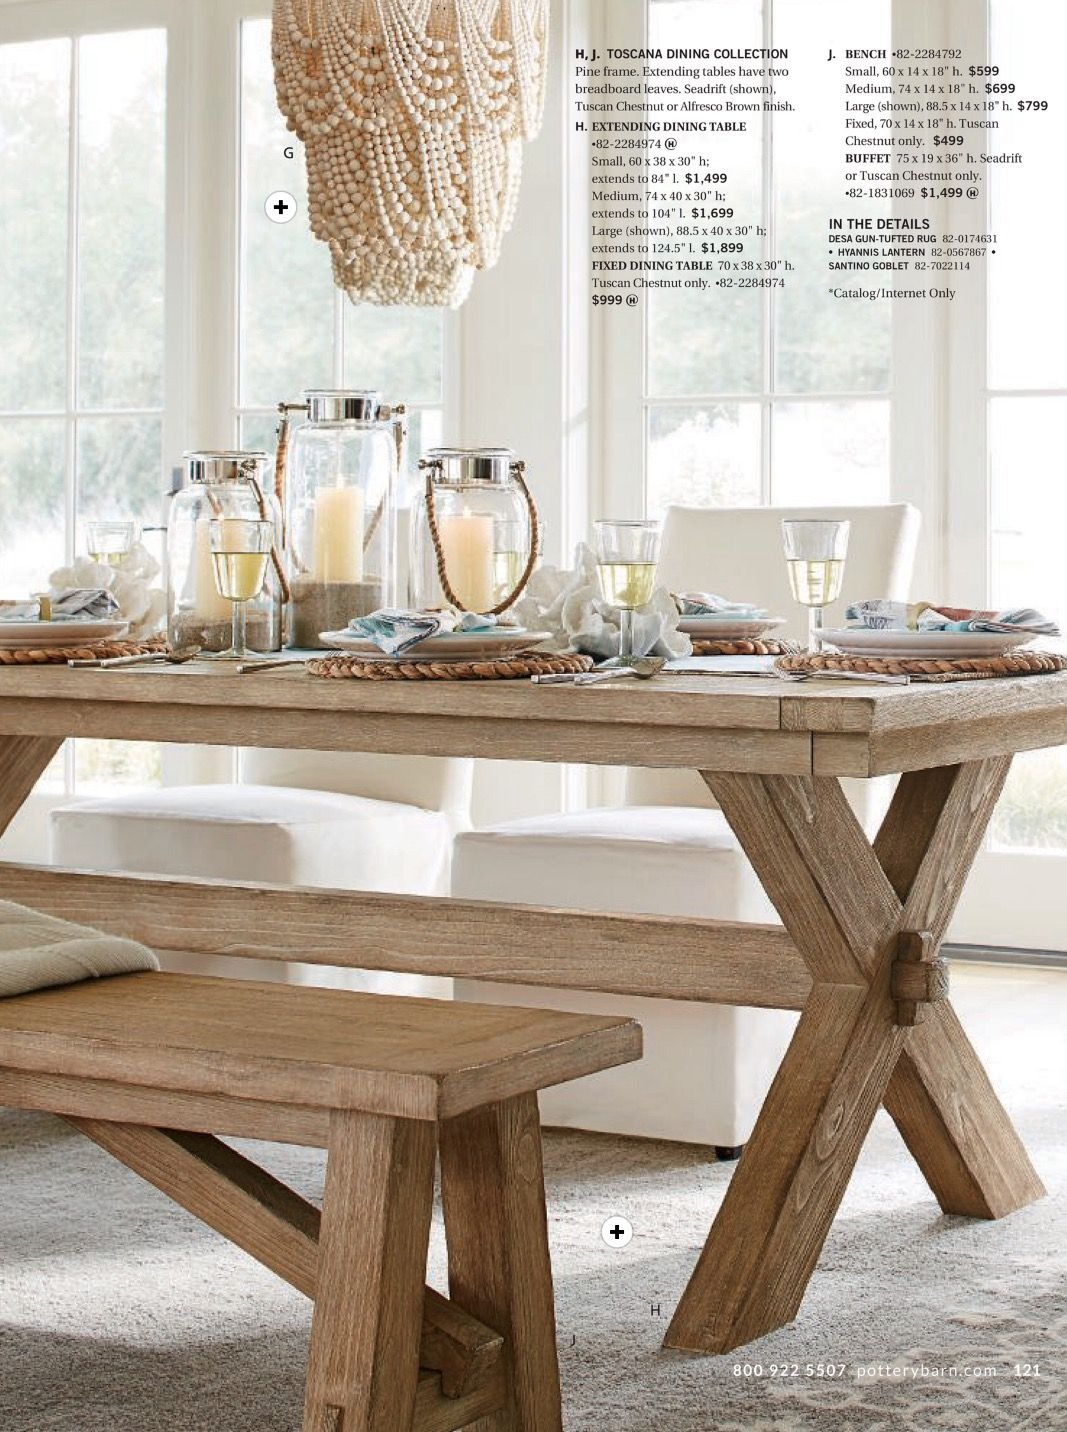 Featured Image of Tuscan Chestnut Toscana Dining Tables